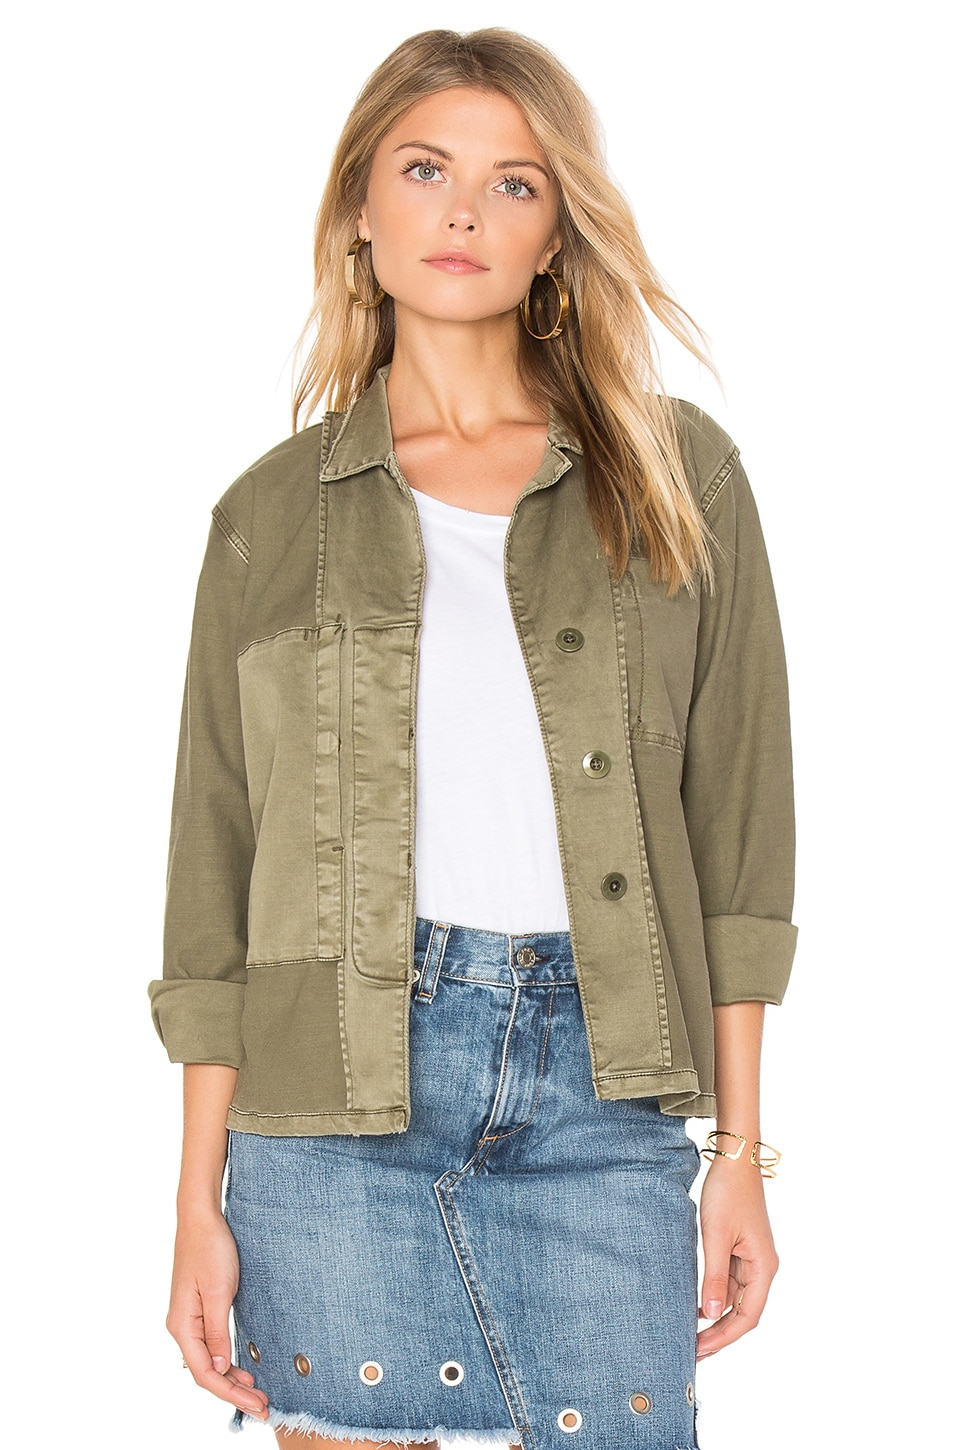 The Reversed Military Shirt Jacket by Current/Elliott